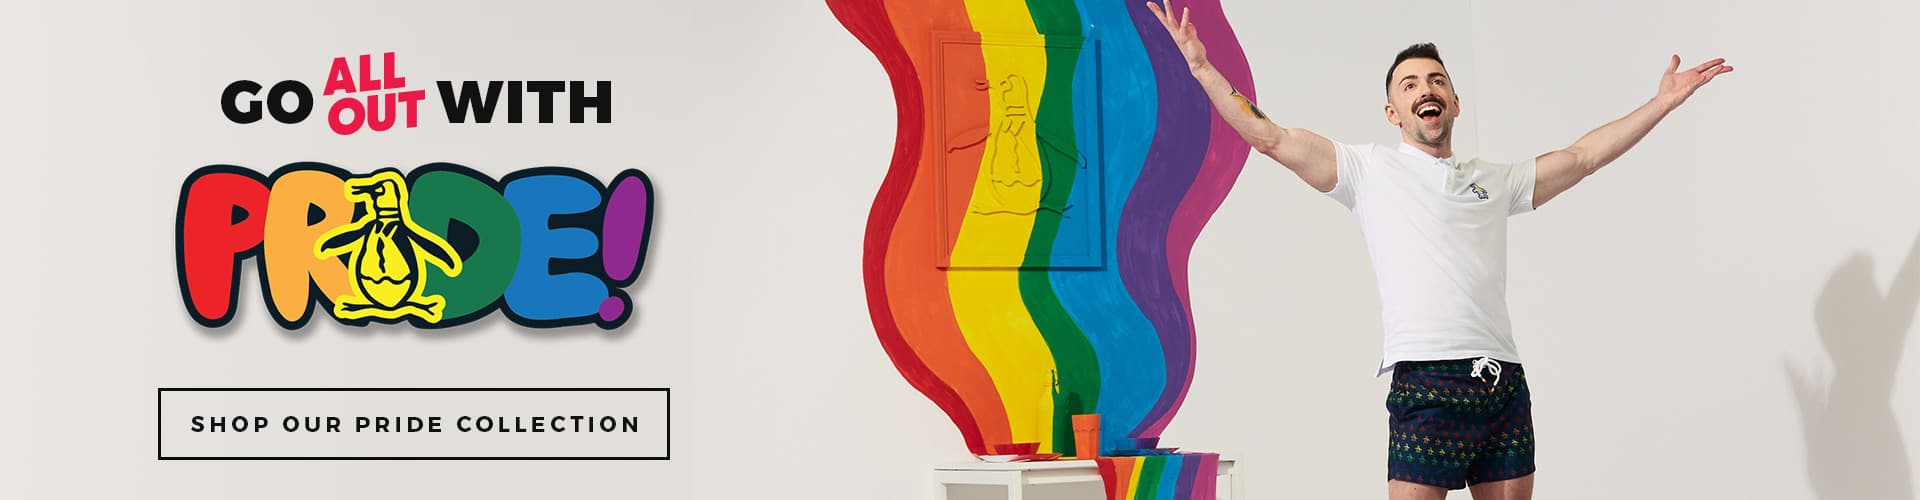 Go All Out With Pride - Shop Our Pride Collection